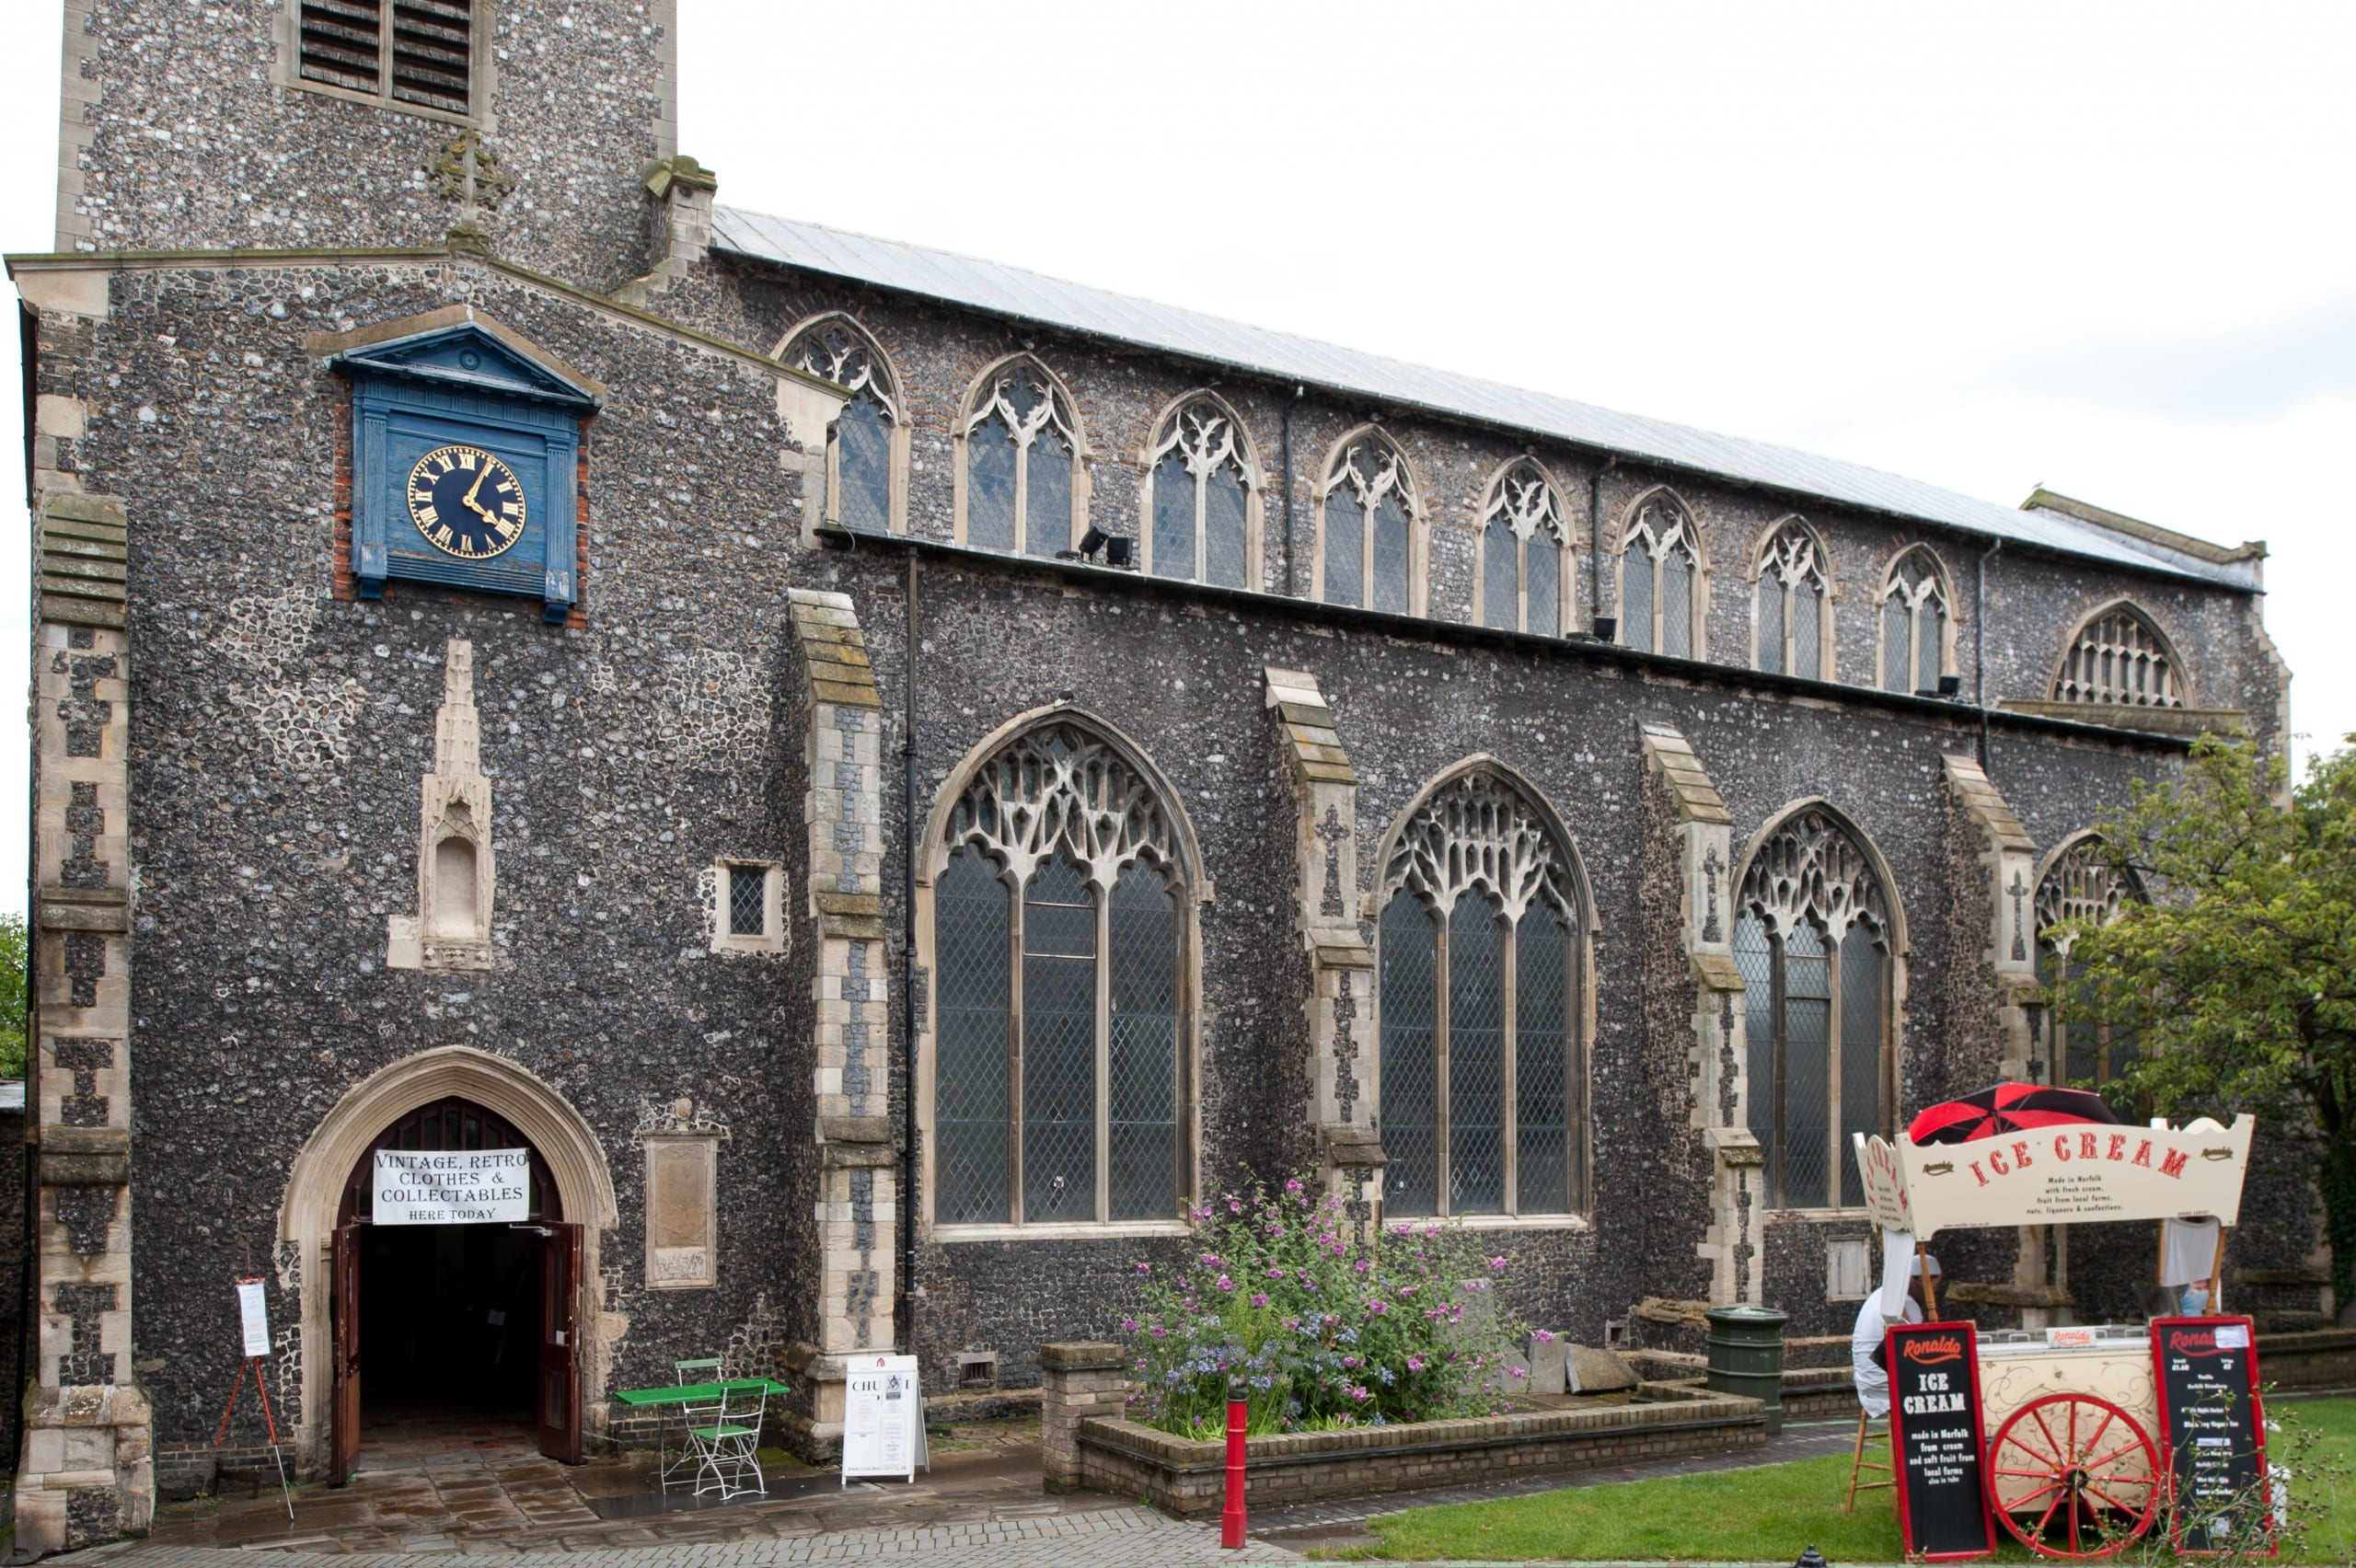 Fig. 2: Exterior of the former parish church of St. Gregory Pottergate, Norwich, England, late 14th century, view looking northeast (author's photo).